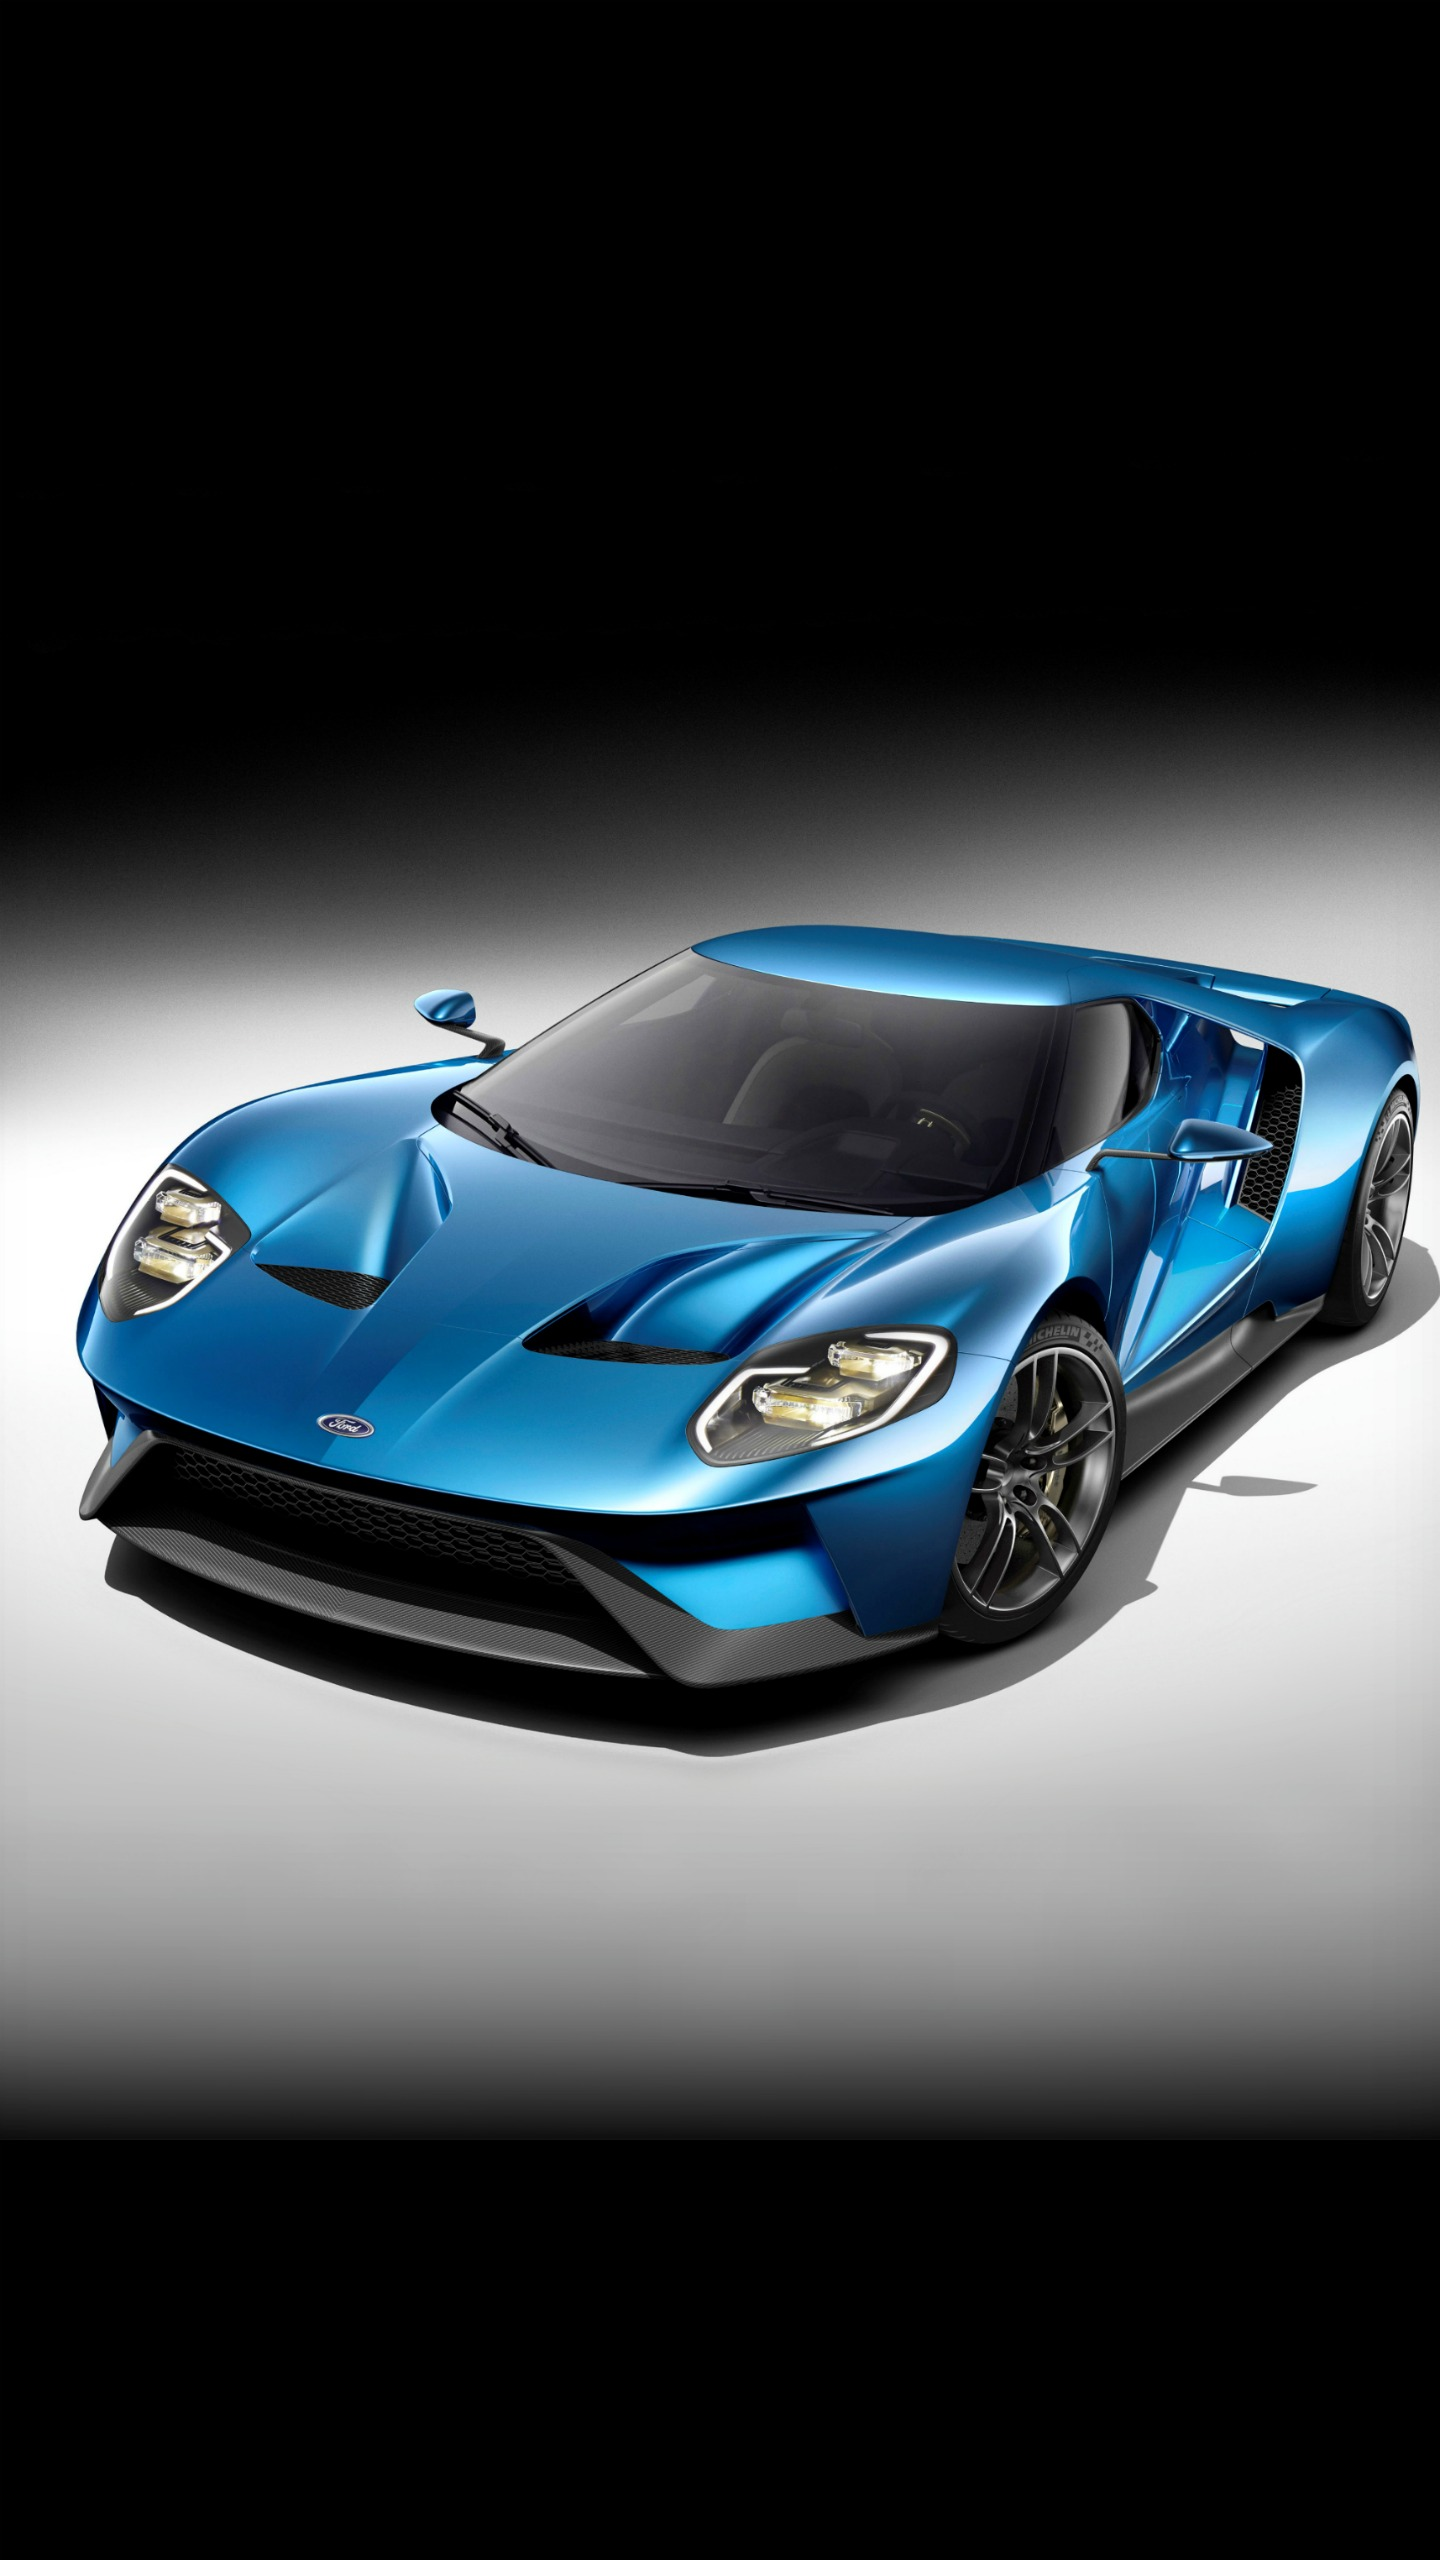 Sports Car 2017 Ford GT wallpaper HD Desktop Mobile 1440x2560